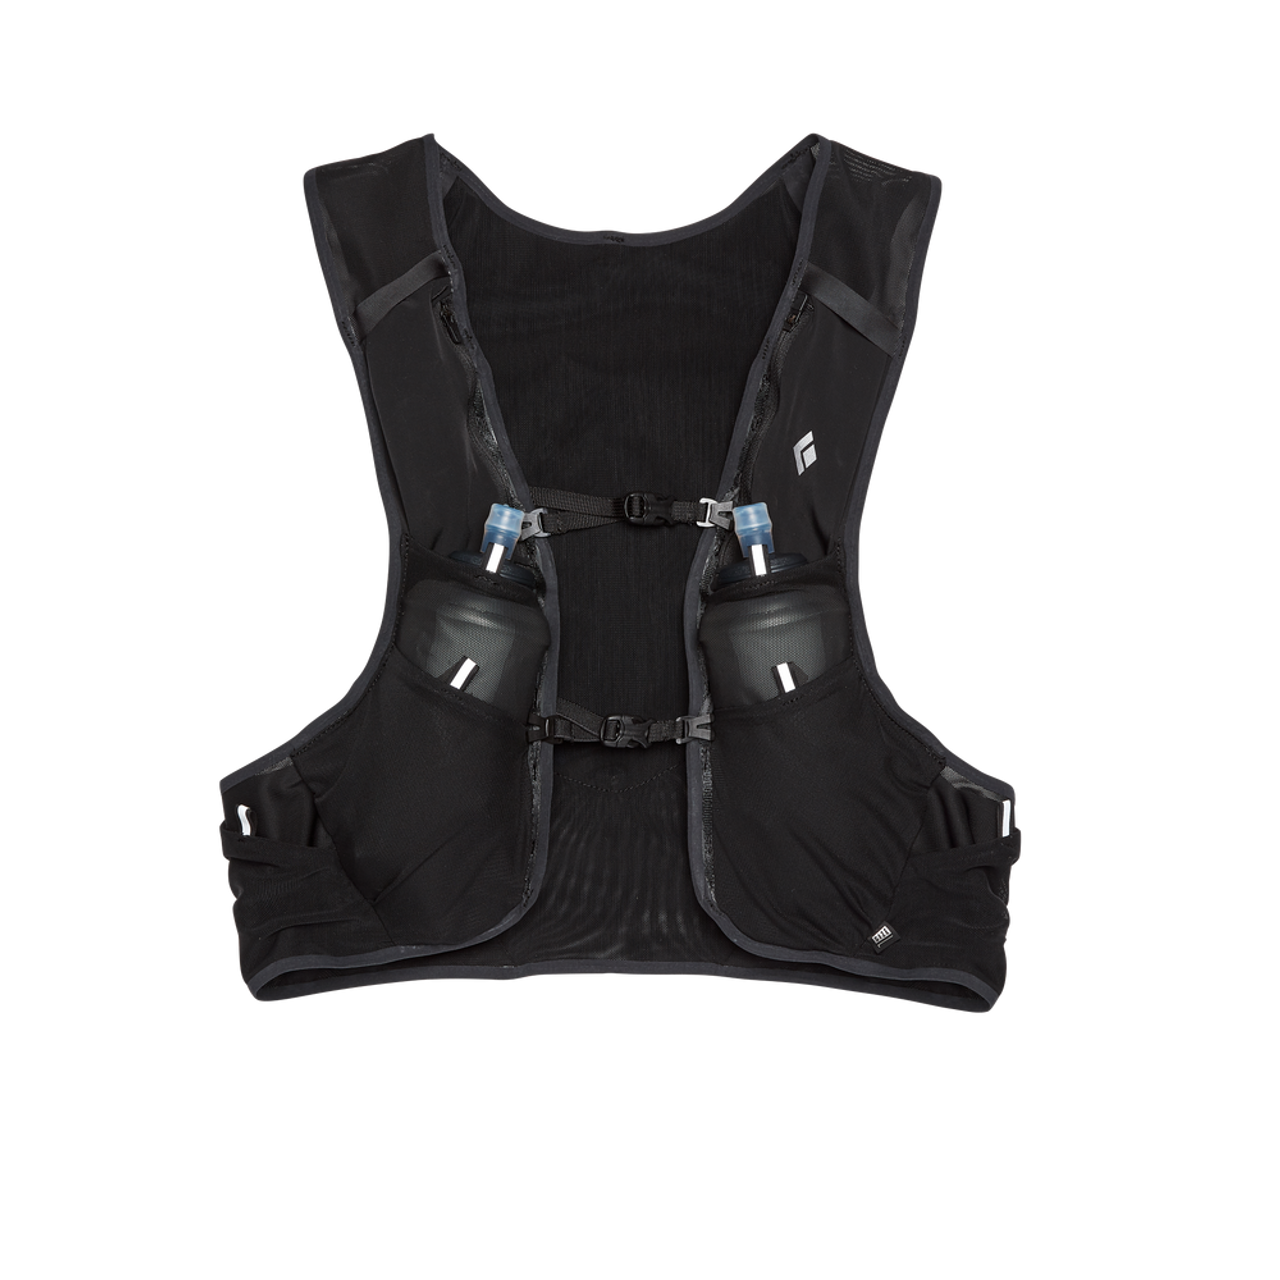 Black Diamond Distance 4 Hydration Vest - Front - Online at Mountain Mail Order South Africa